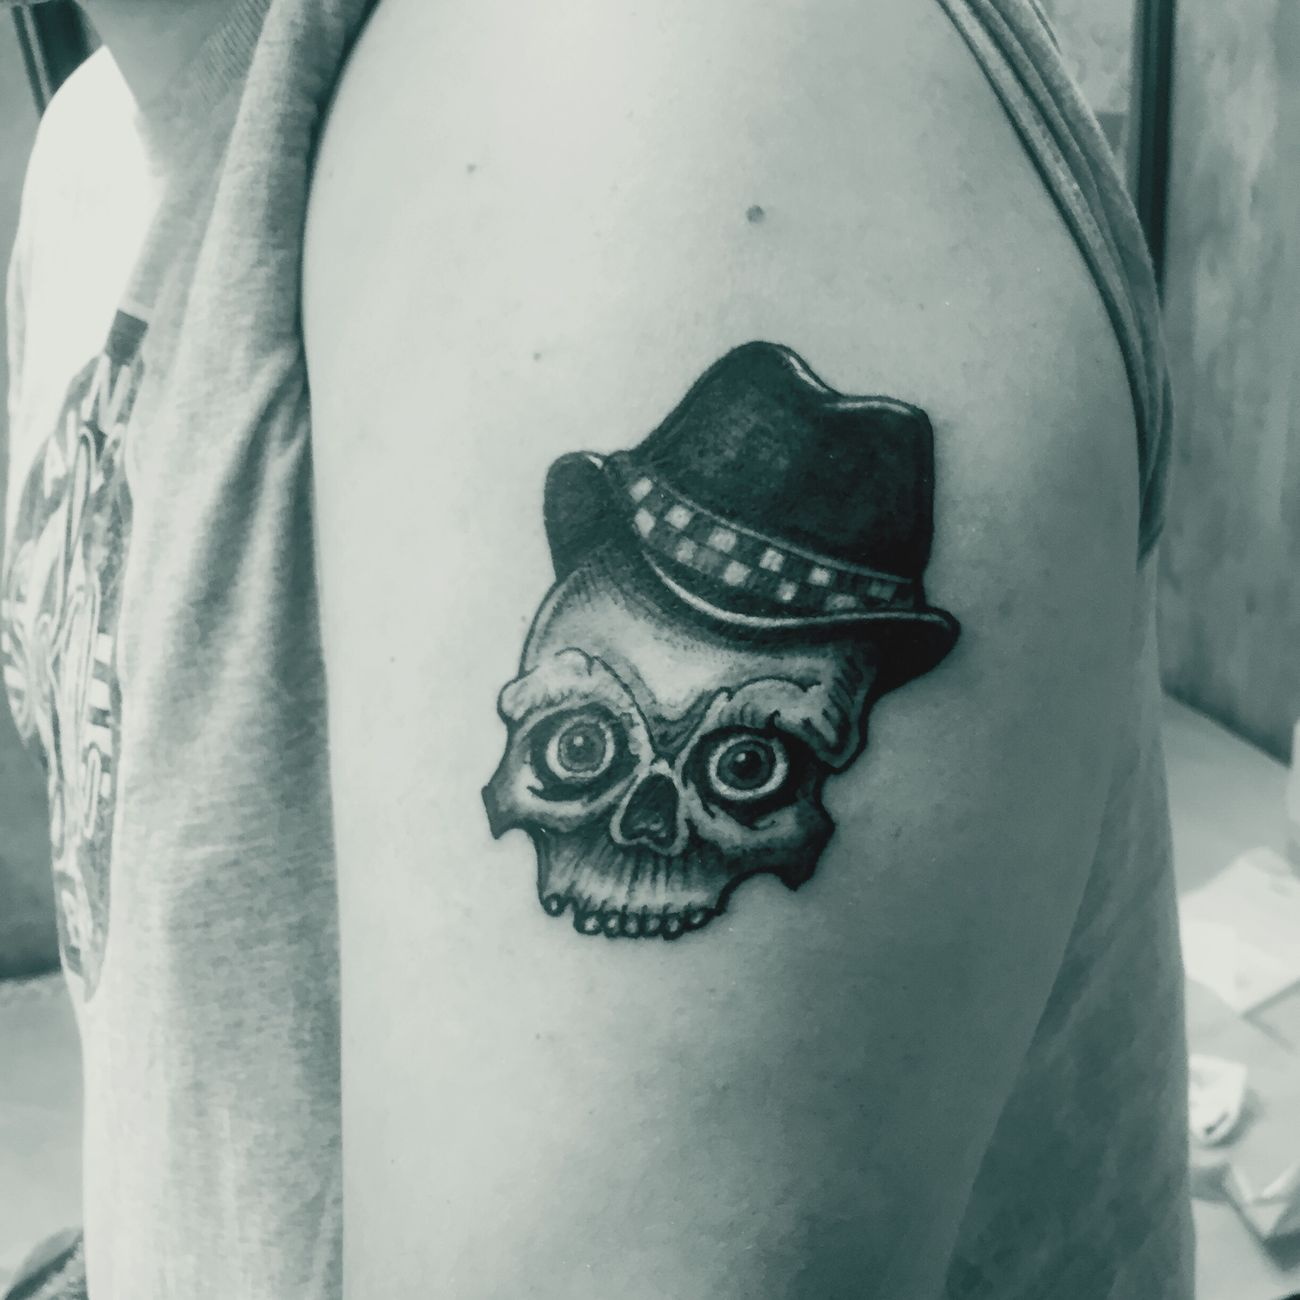 Tieumdeko Tieumdekotattoo Blackwork Tattooartist  Tattooshop Tattoo ❤ Art, Drawing, Creativity Tattooed Inked Tatted Tattoos Tatto Design Amazing Tattoo Ink Blackandwhite Skulls Skull Traditional RudeBoy Gangsta Oldschool Ska